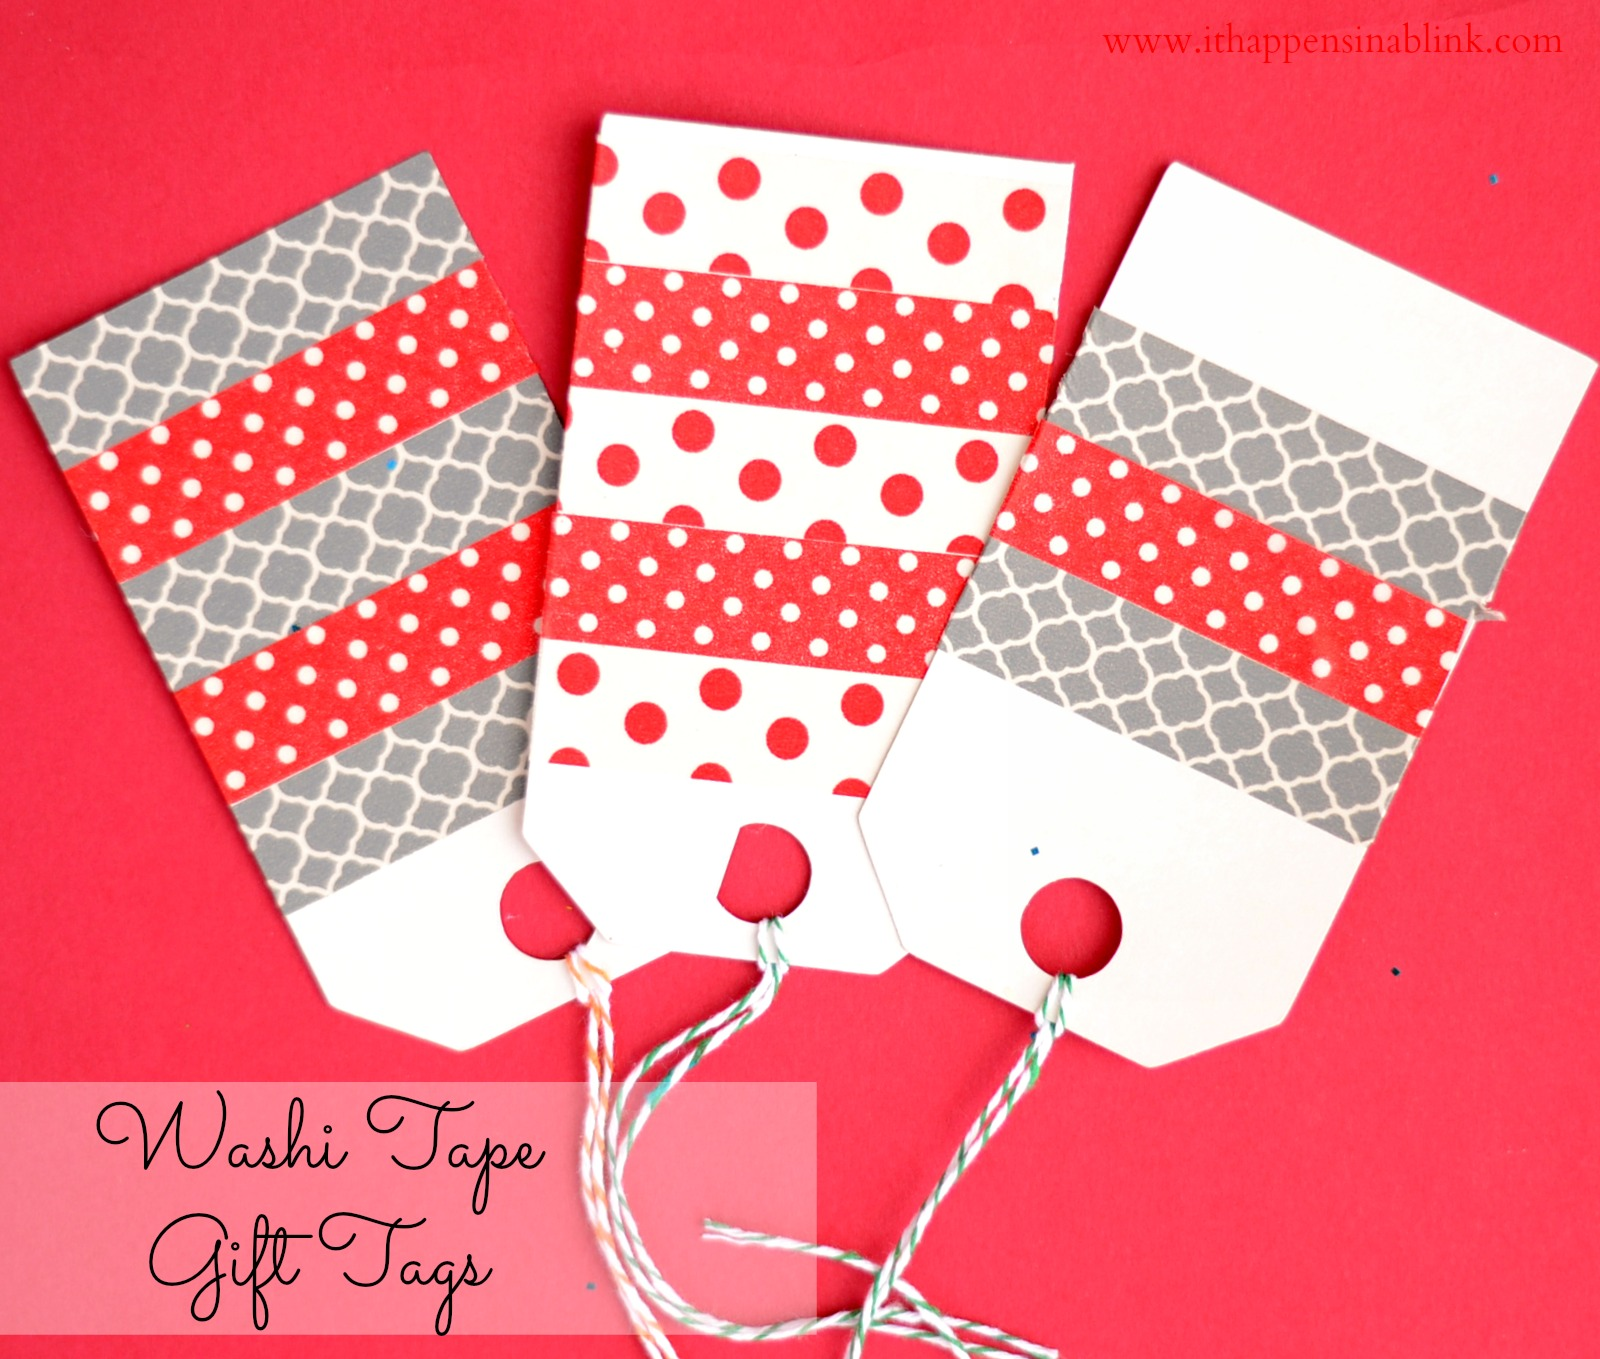 20 crafty days of christmas washi tape gift tags  see